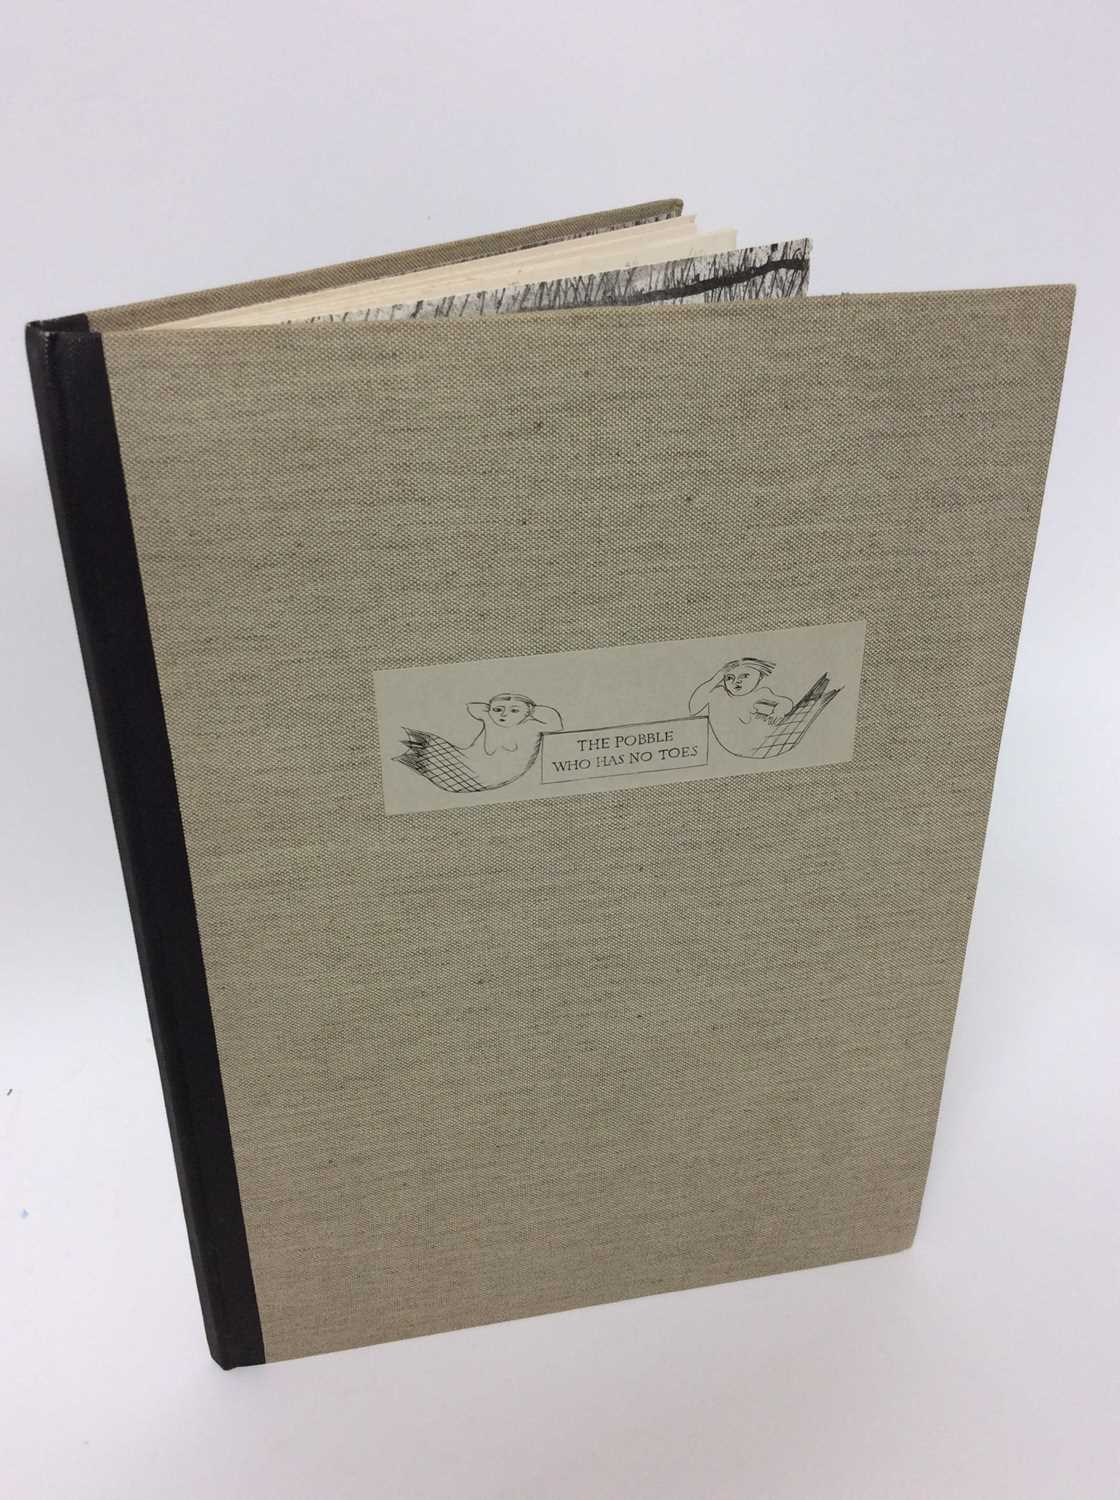 Lot 65 - Edward Lear 'The Pobble who has no toes' illustrated Margaret Lock